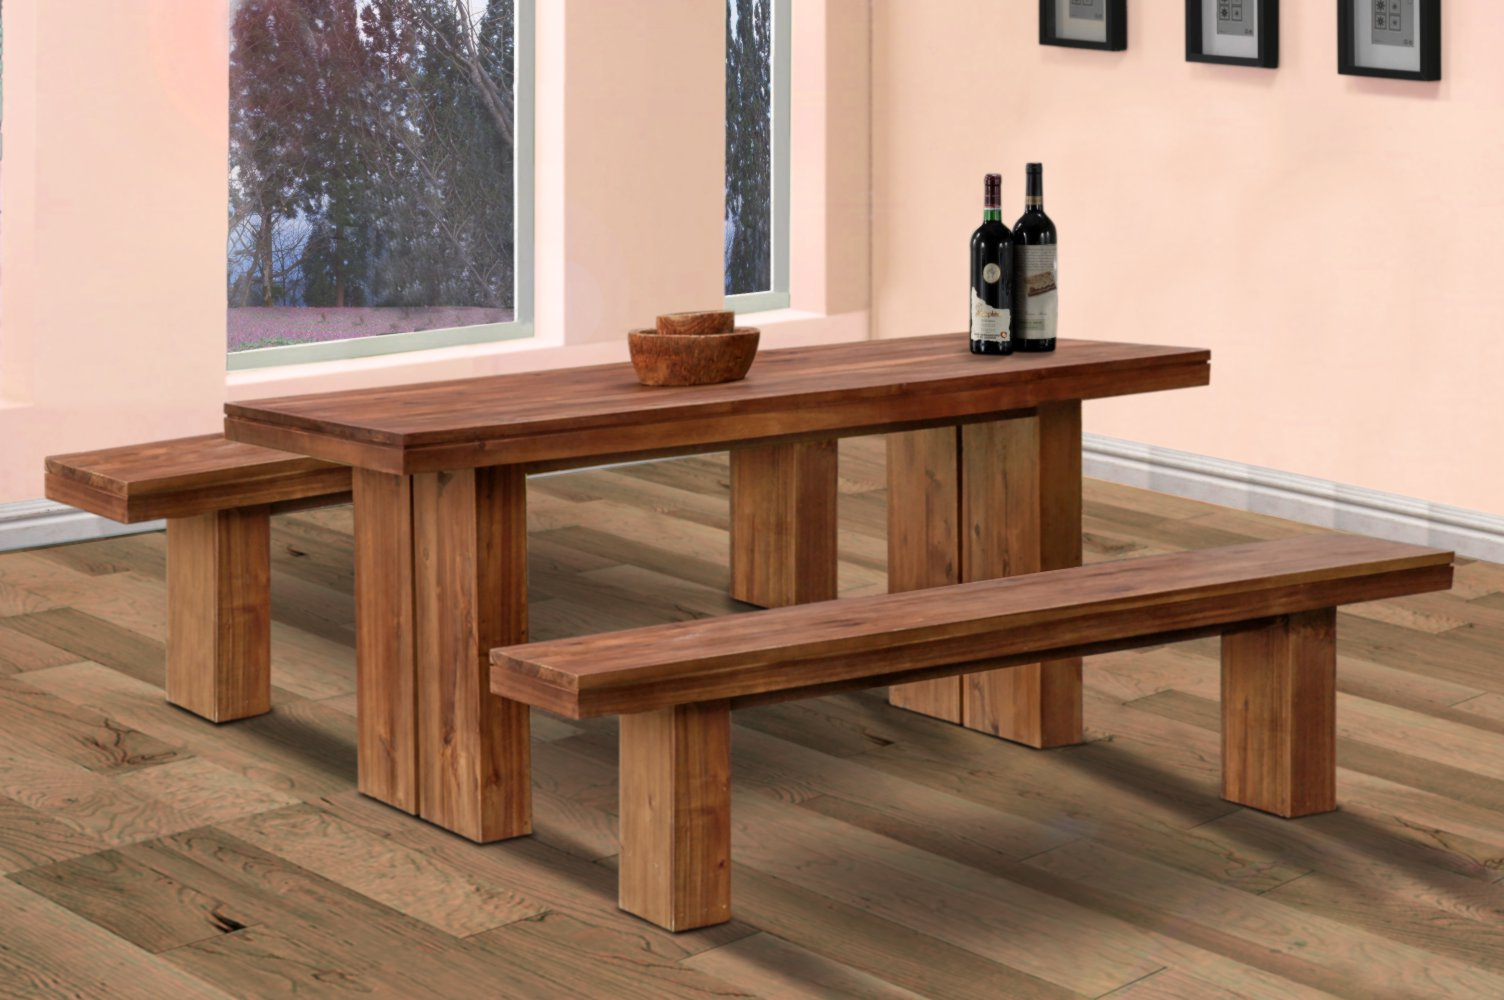 Benches Dining Table: Danielle Dining Table And Bench